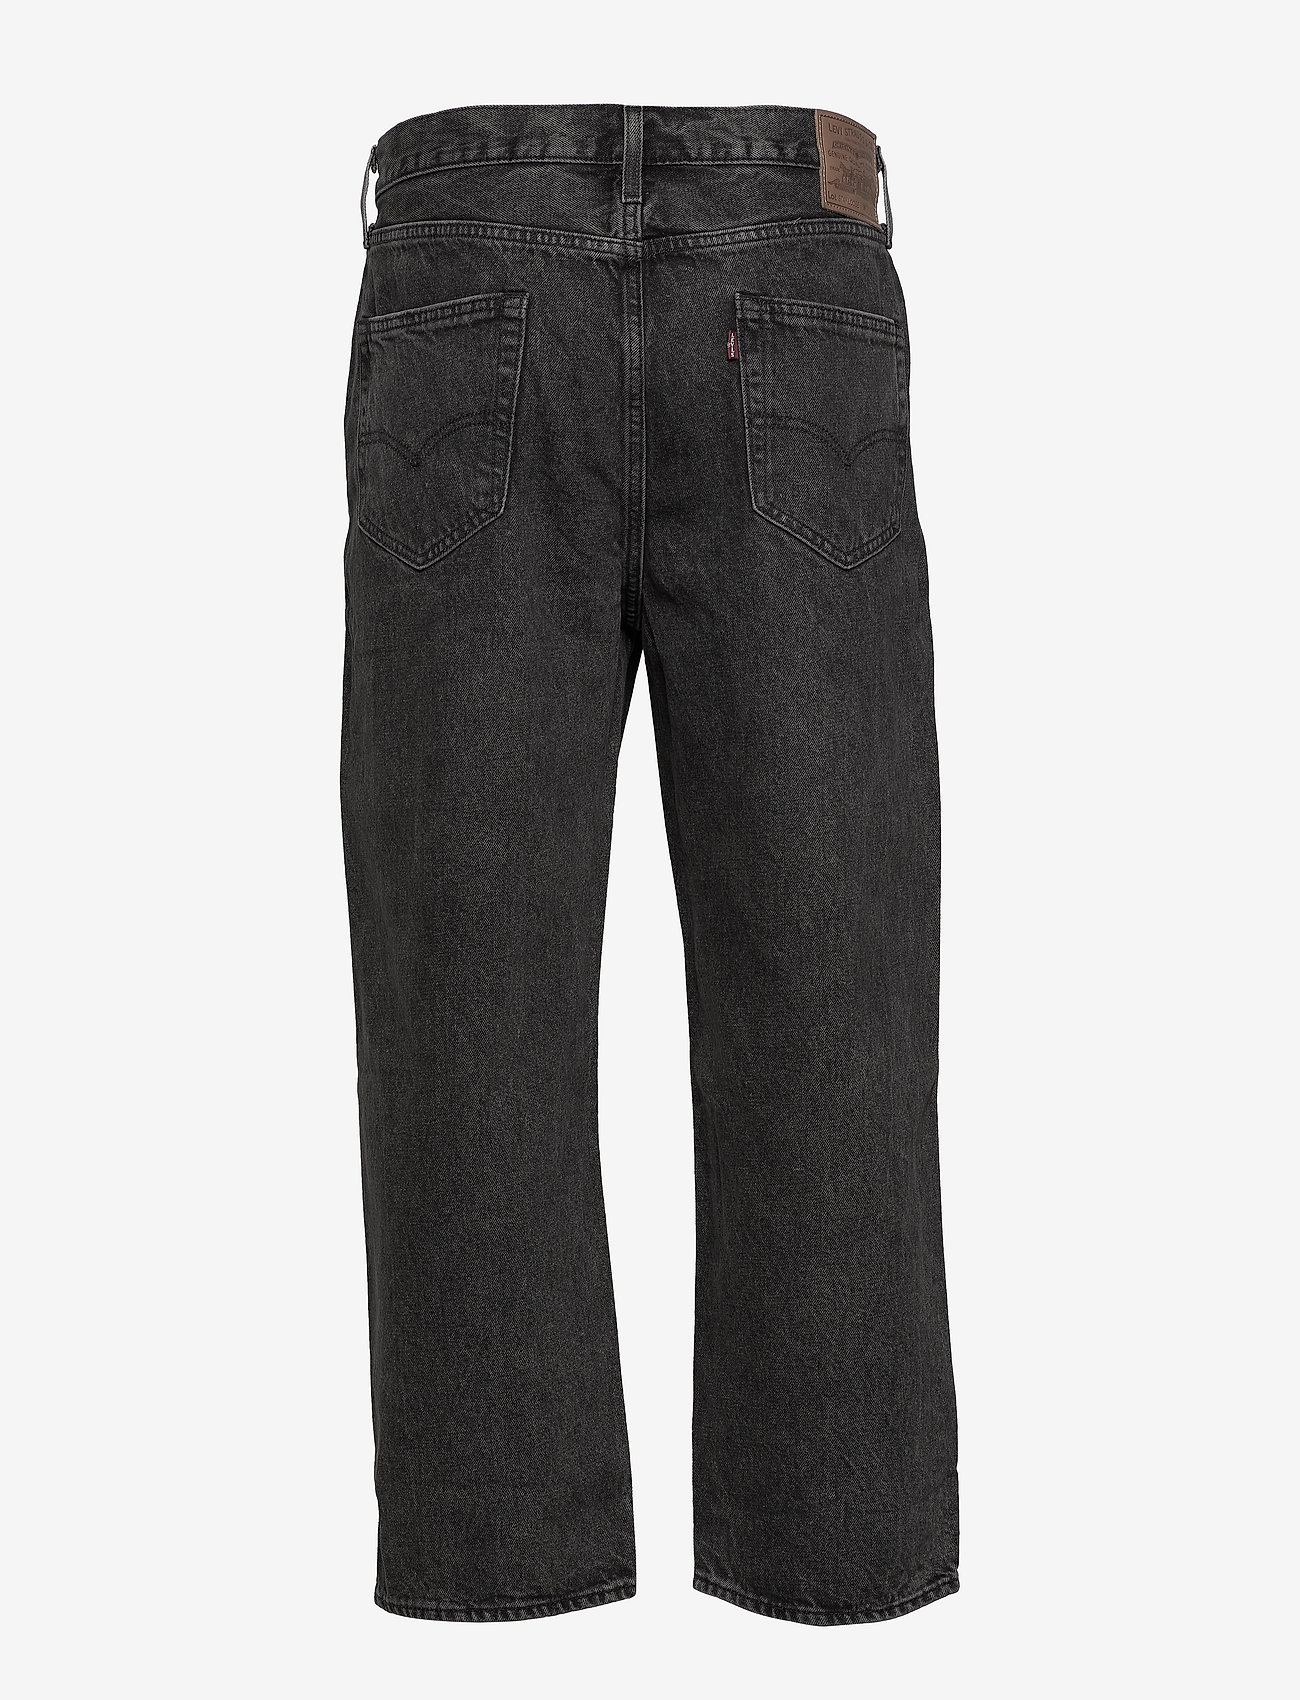 LEVI´S Men - STAY LOOSE DENIM CROP HOPE YOU - relaxed jeans - blacks - 1